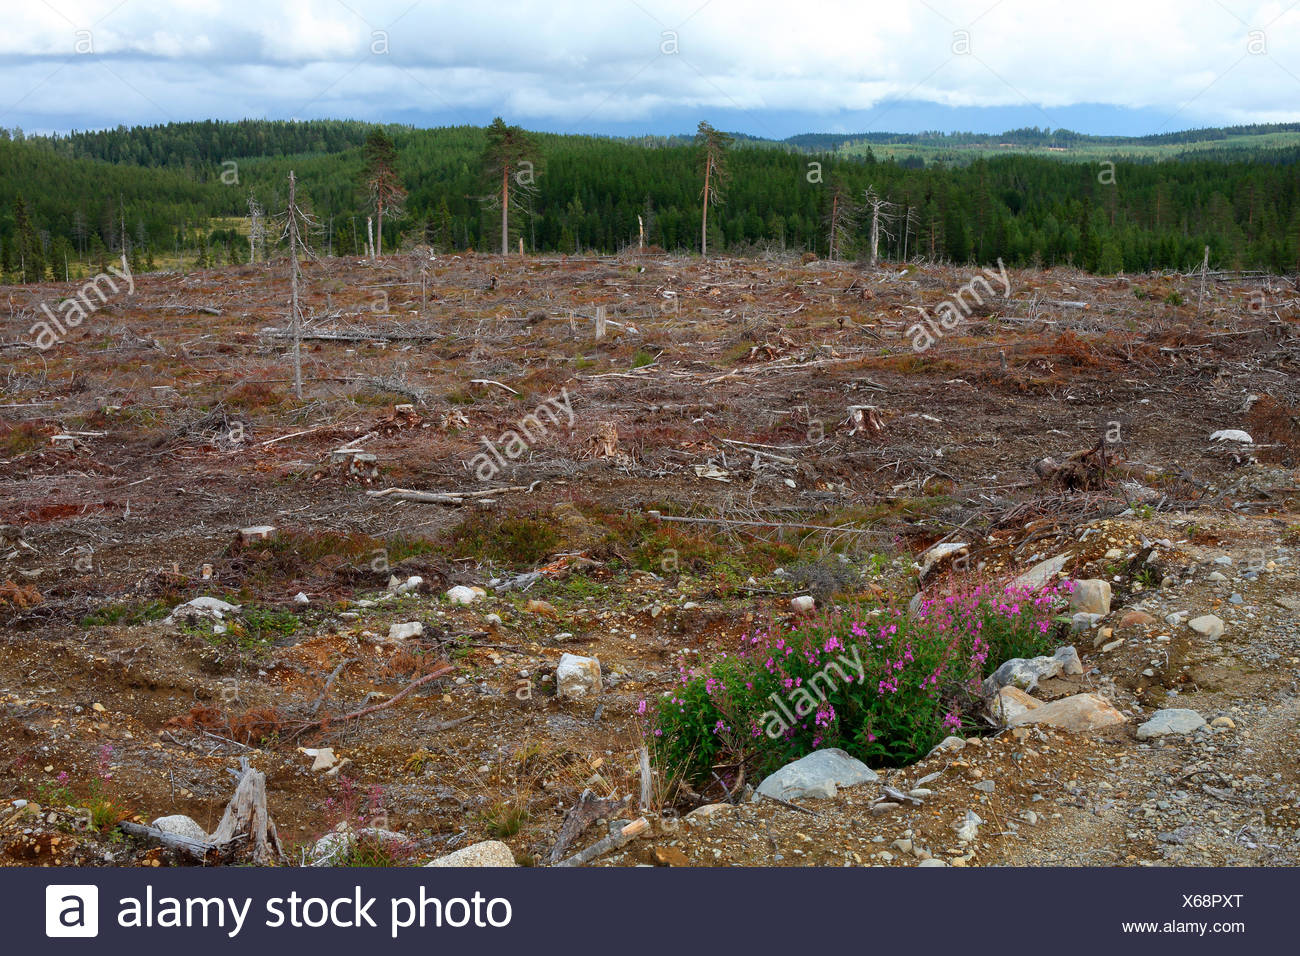 Cut forest - Stock Image